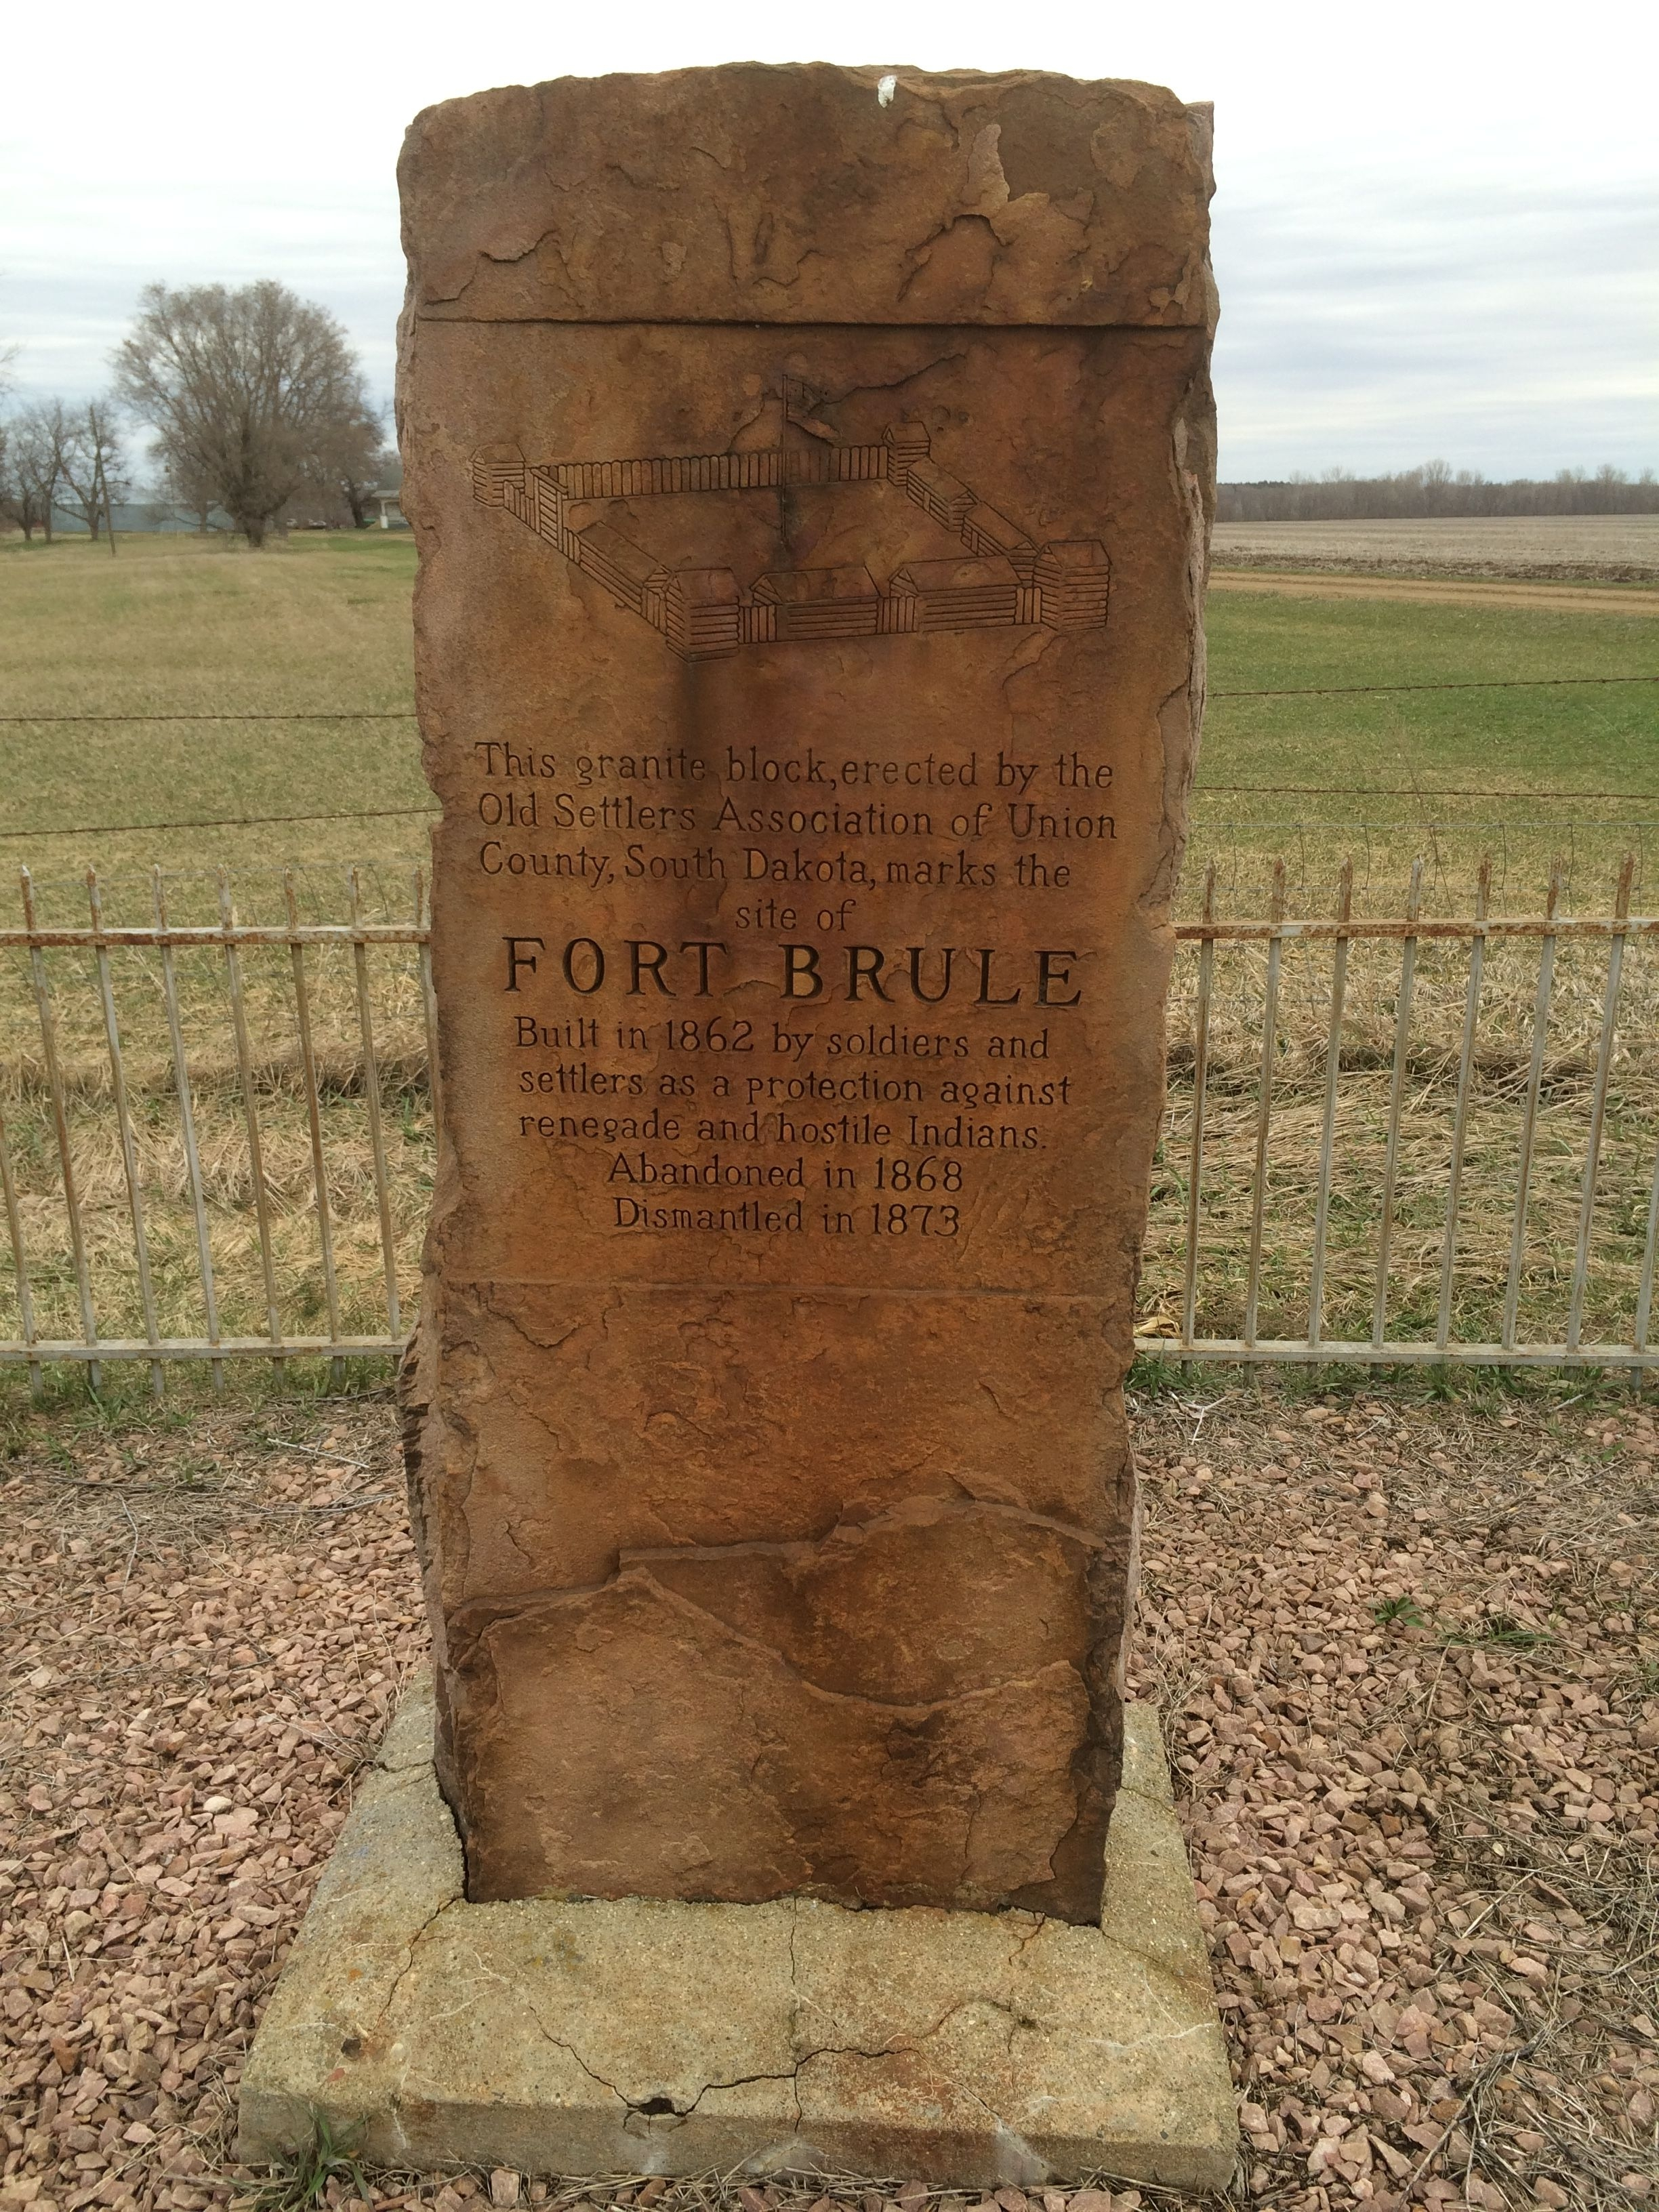 The stone marker